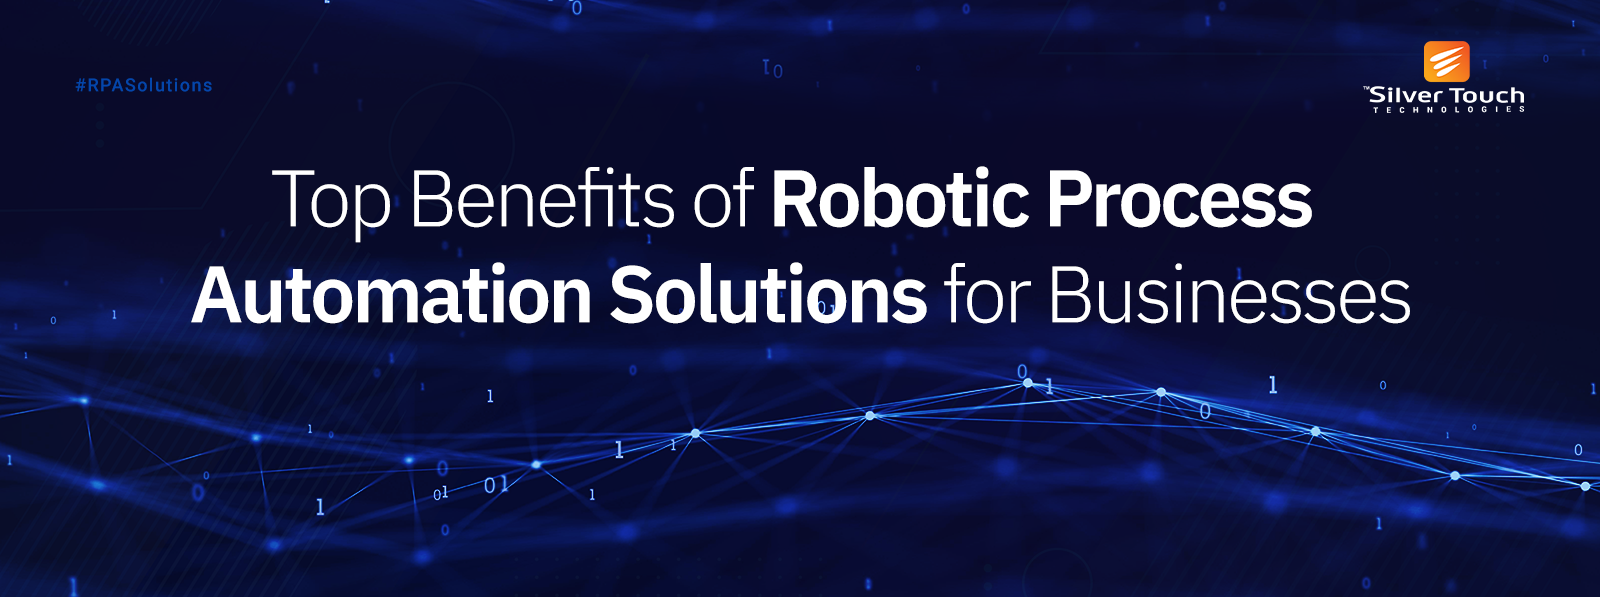 Robotic Process Automation Solutions